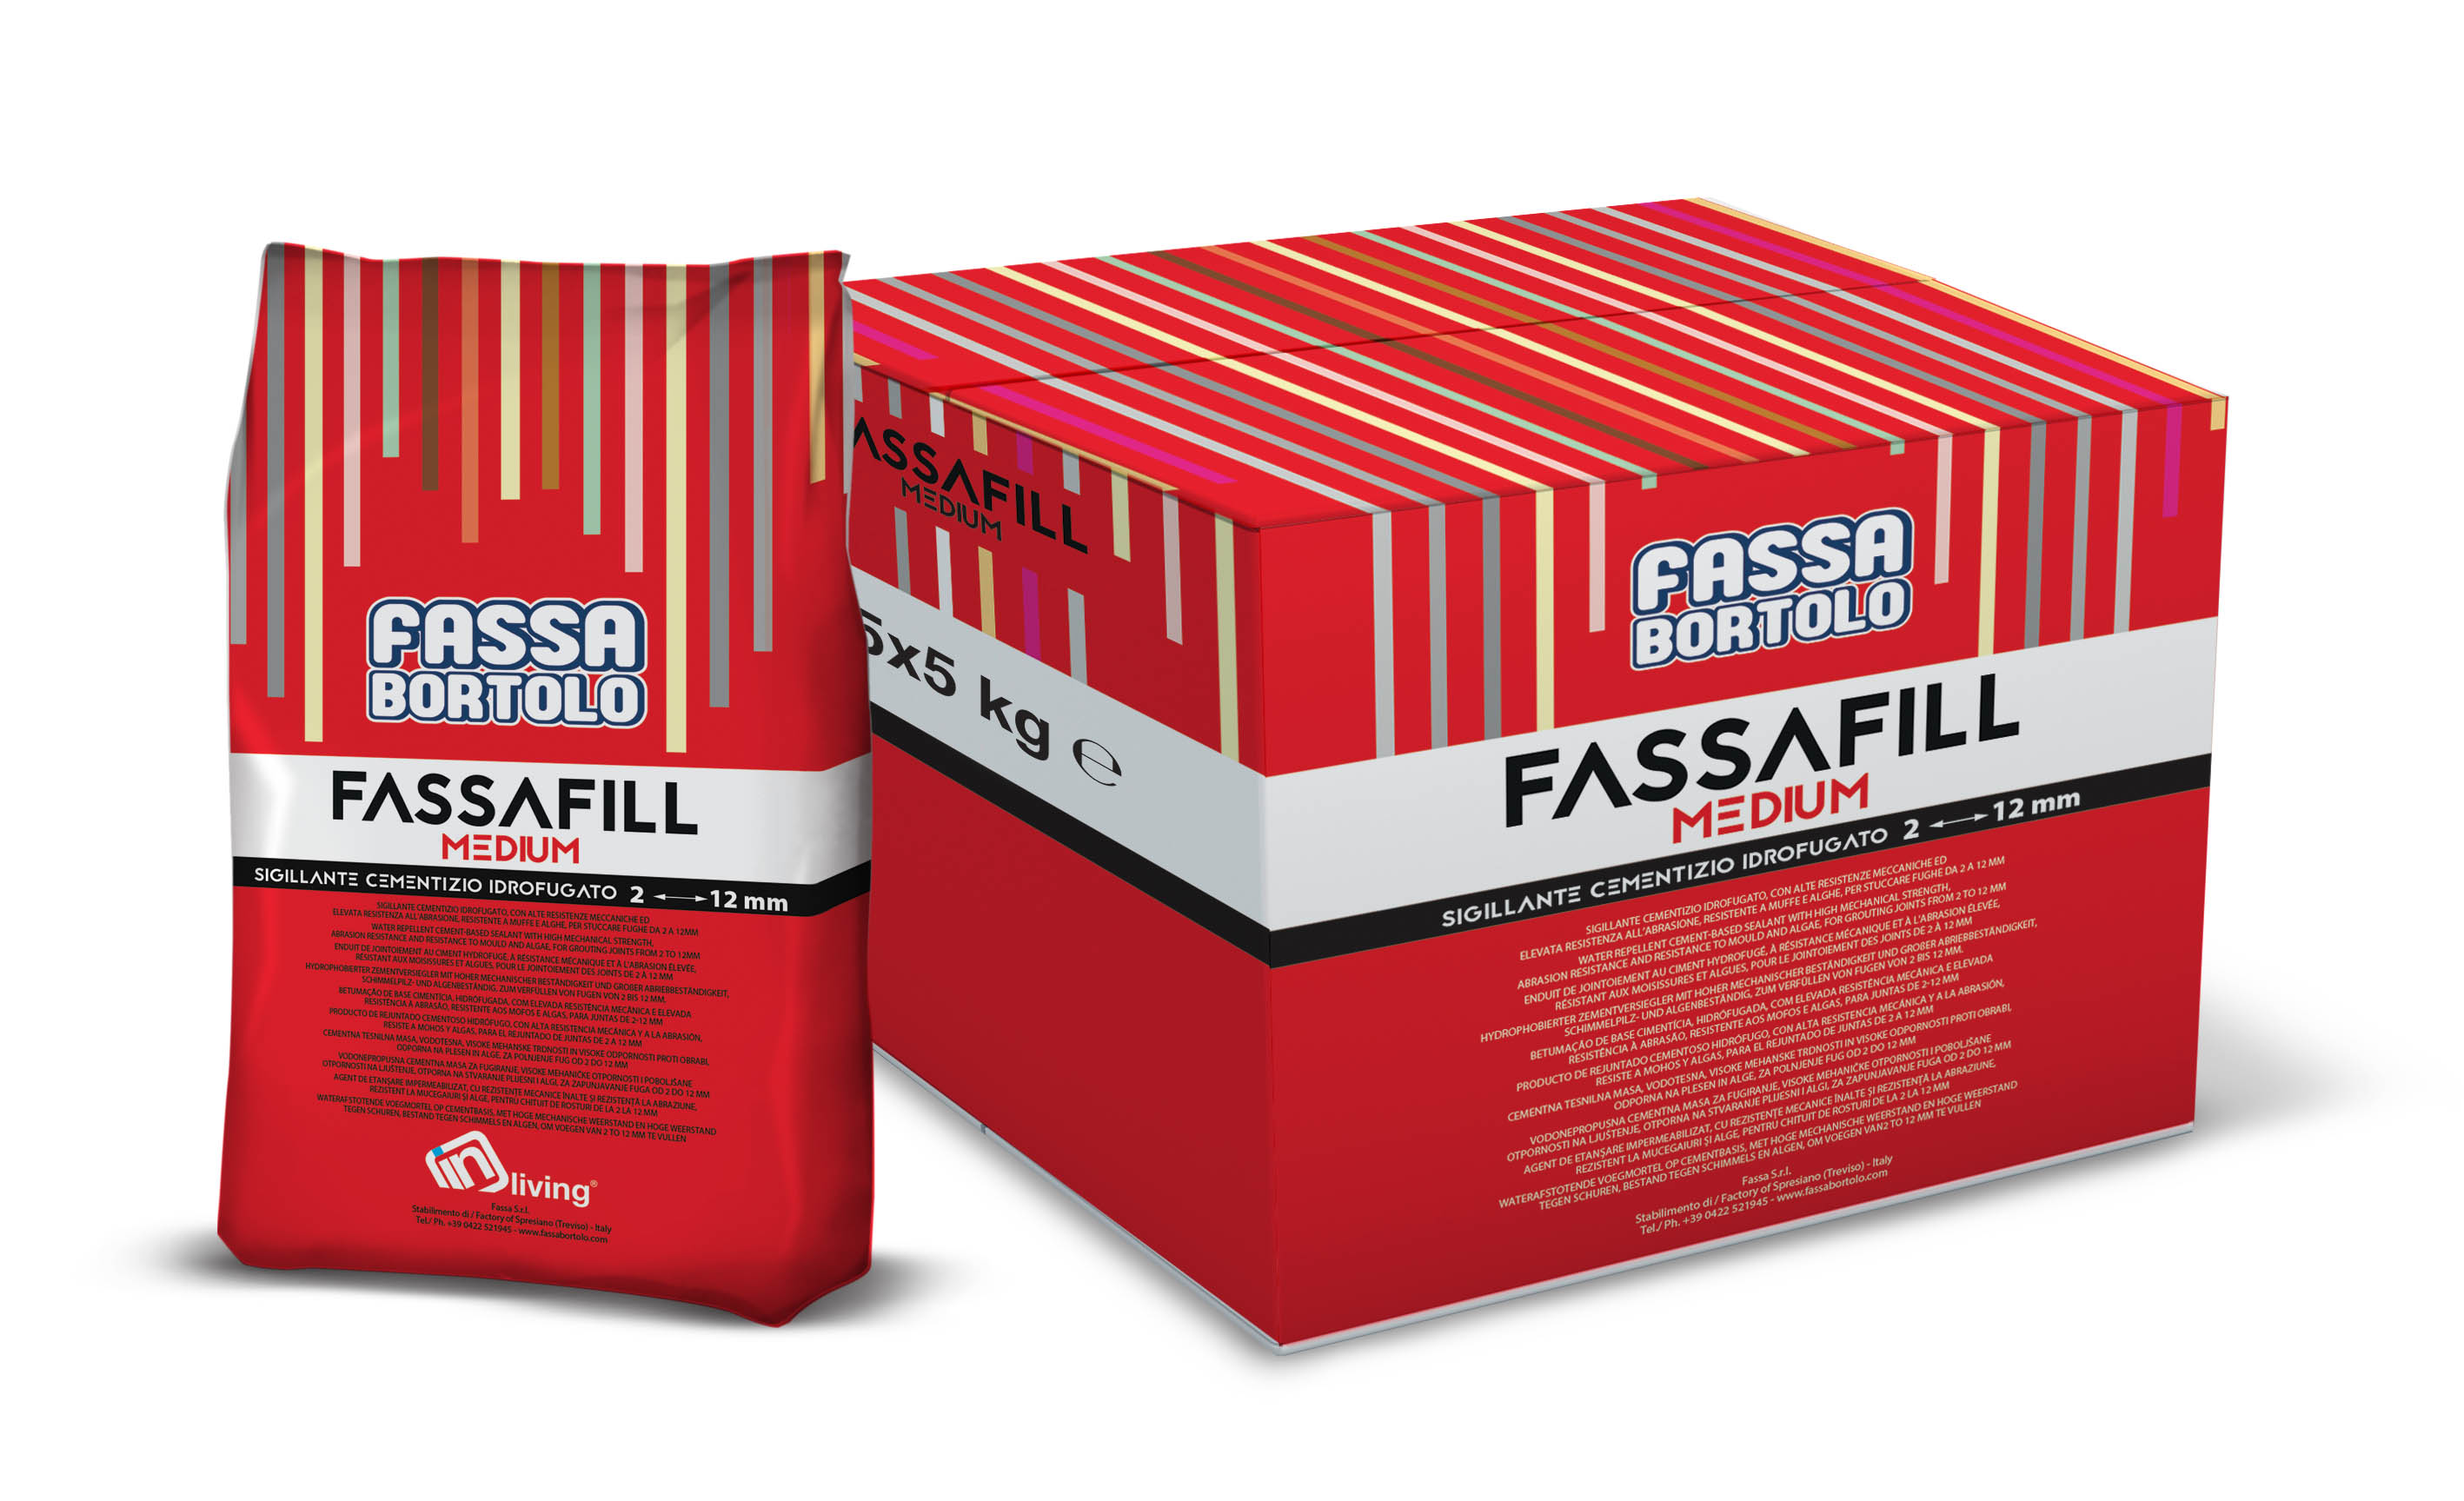 FASSAFILL MEDIUM